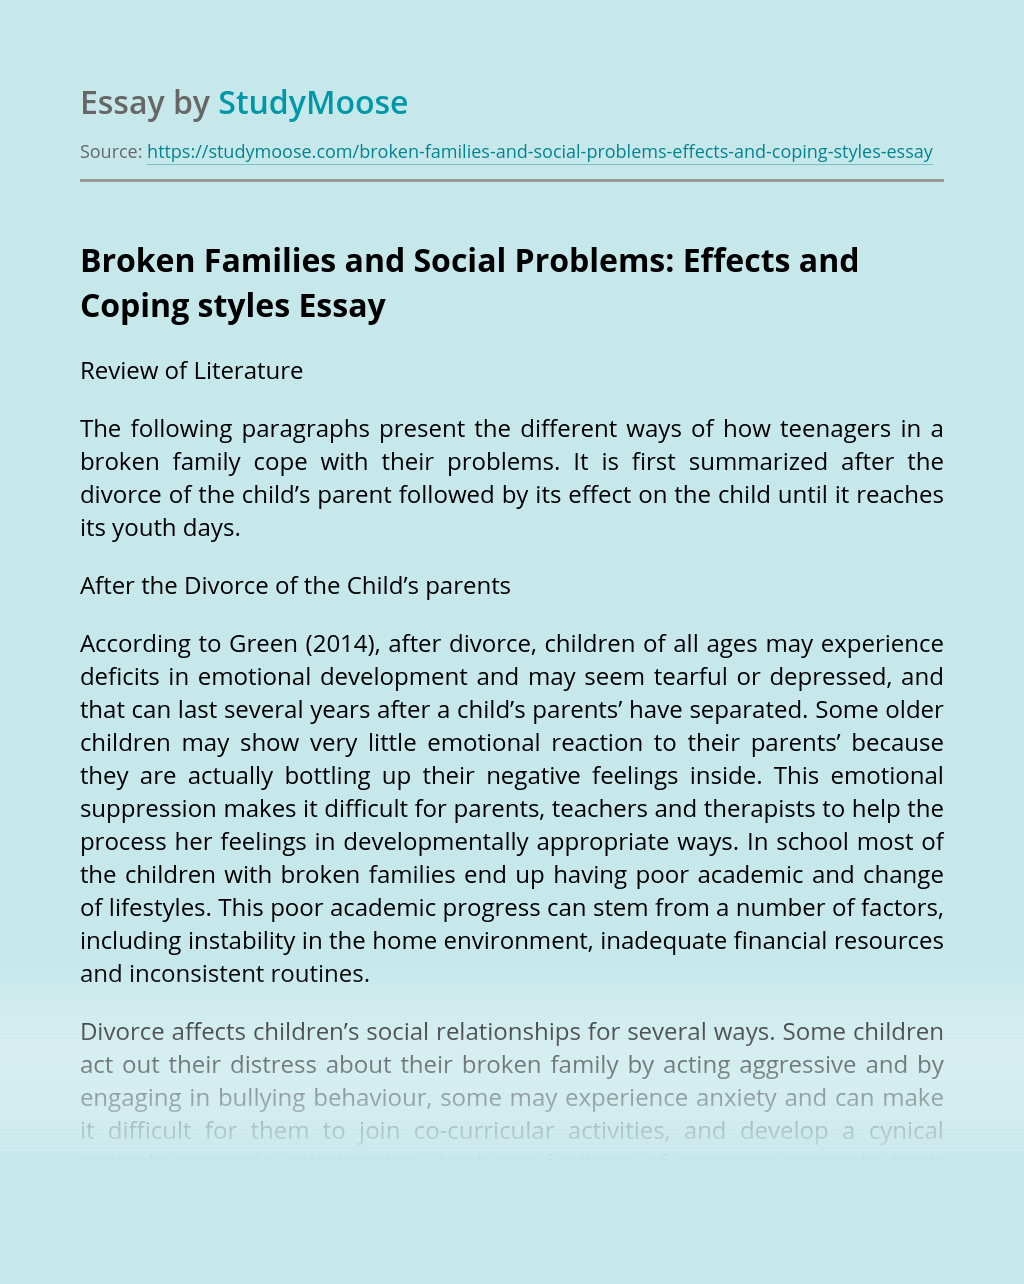 Broken Families and Social Problems: Effects and Coping styles